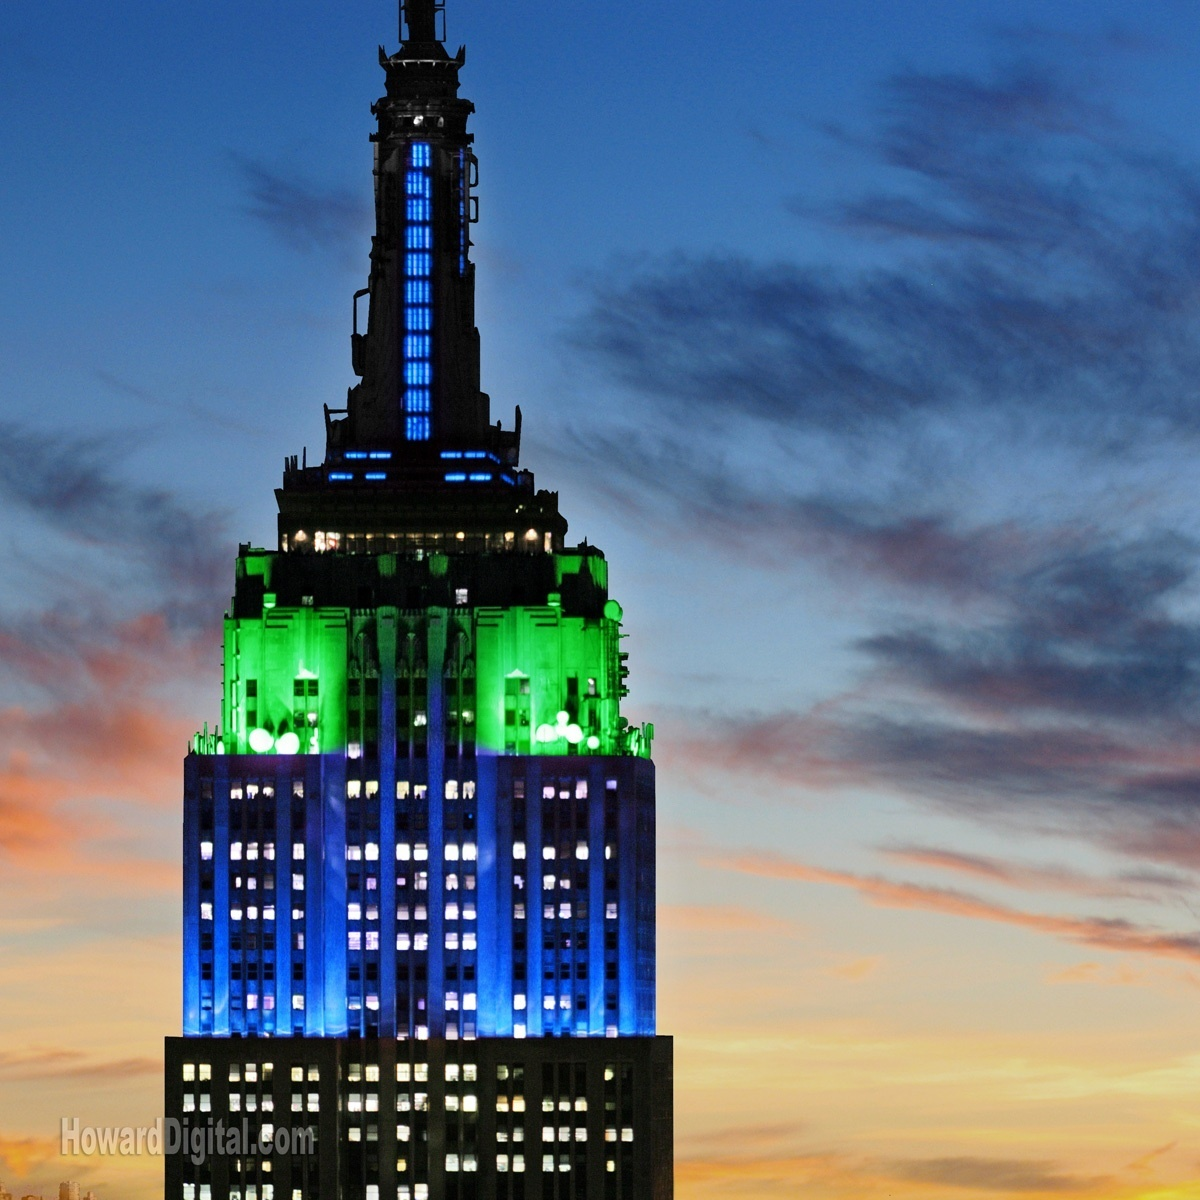 ... Photos - The Empire State Building Is On The King Kong Is Climbing The King Kong Empire State Building With Girl